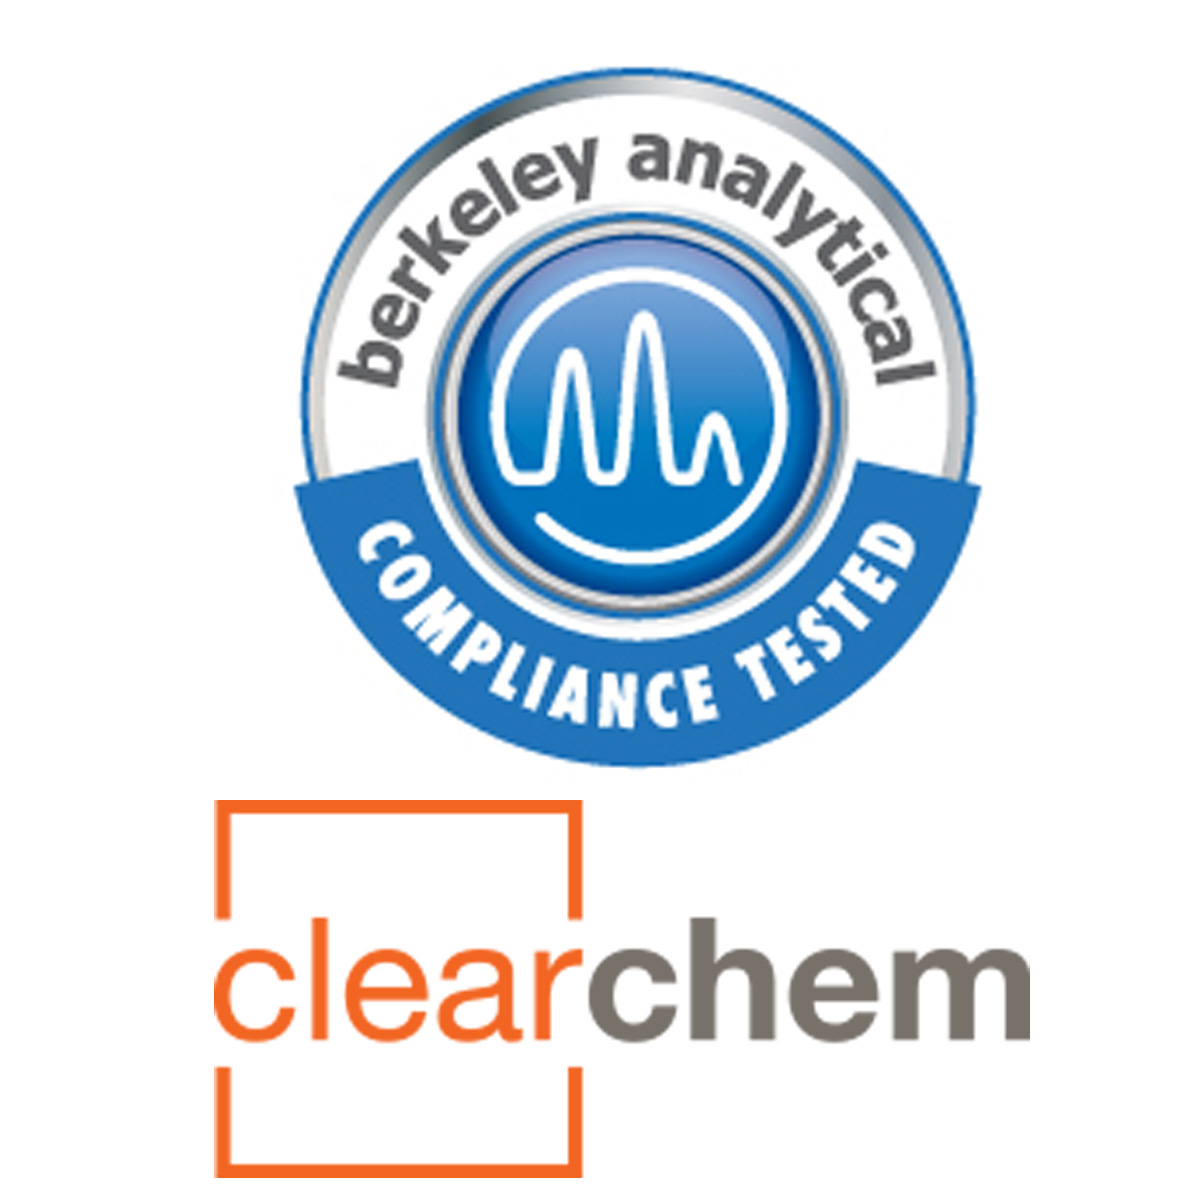 Berkley Analytical Compliance Tested logo